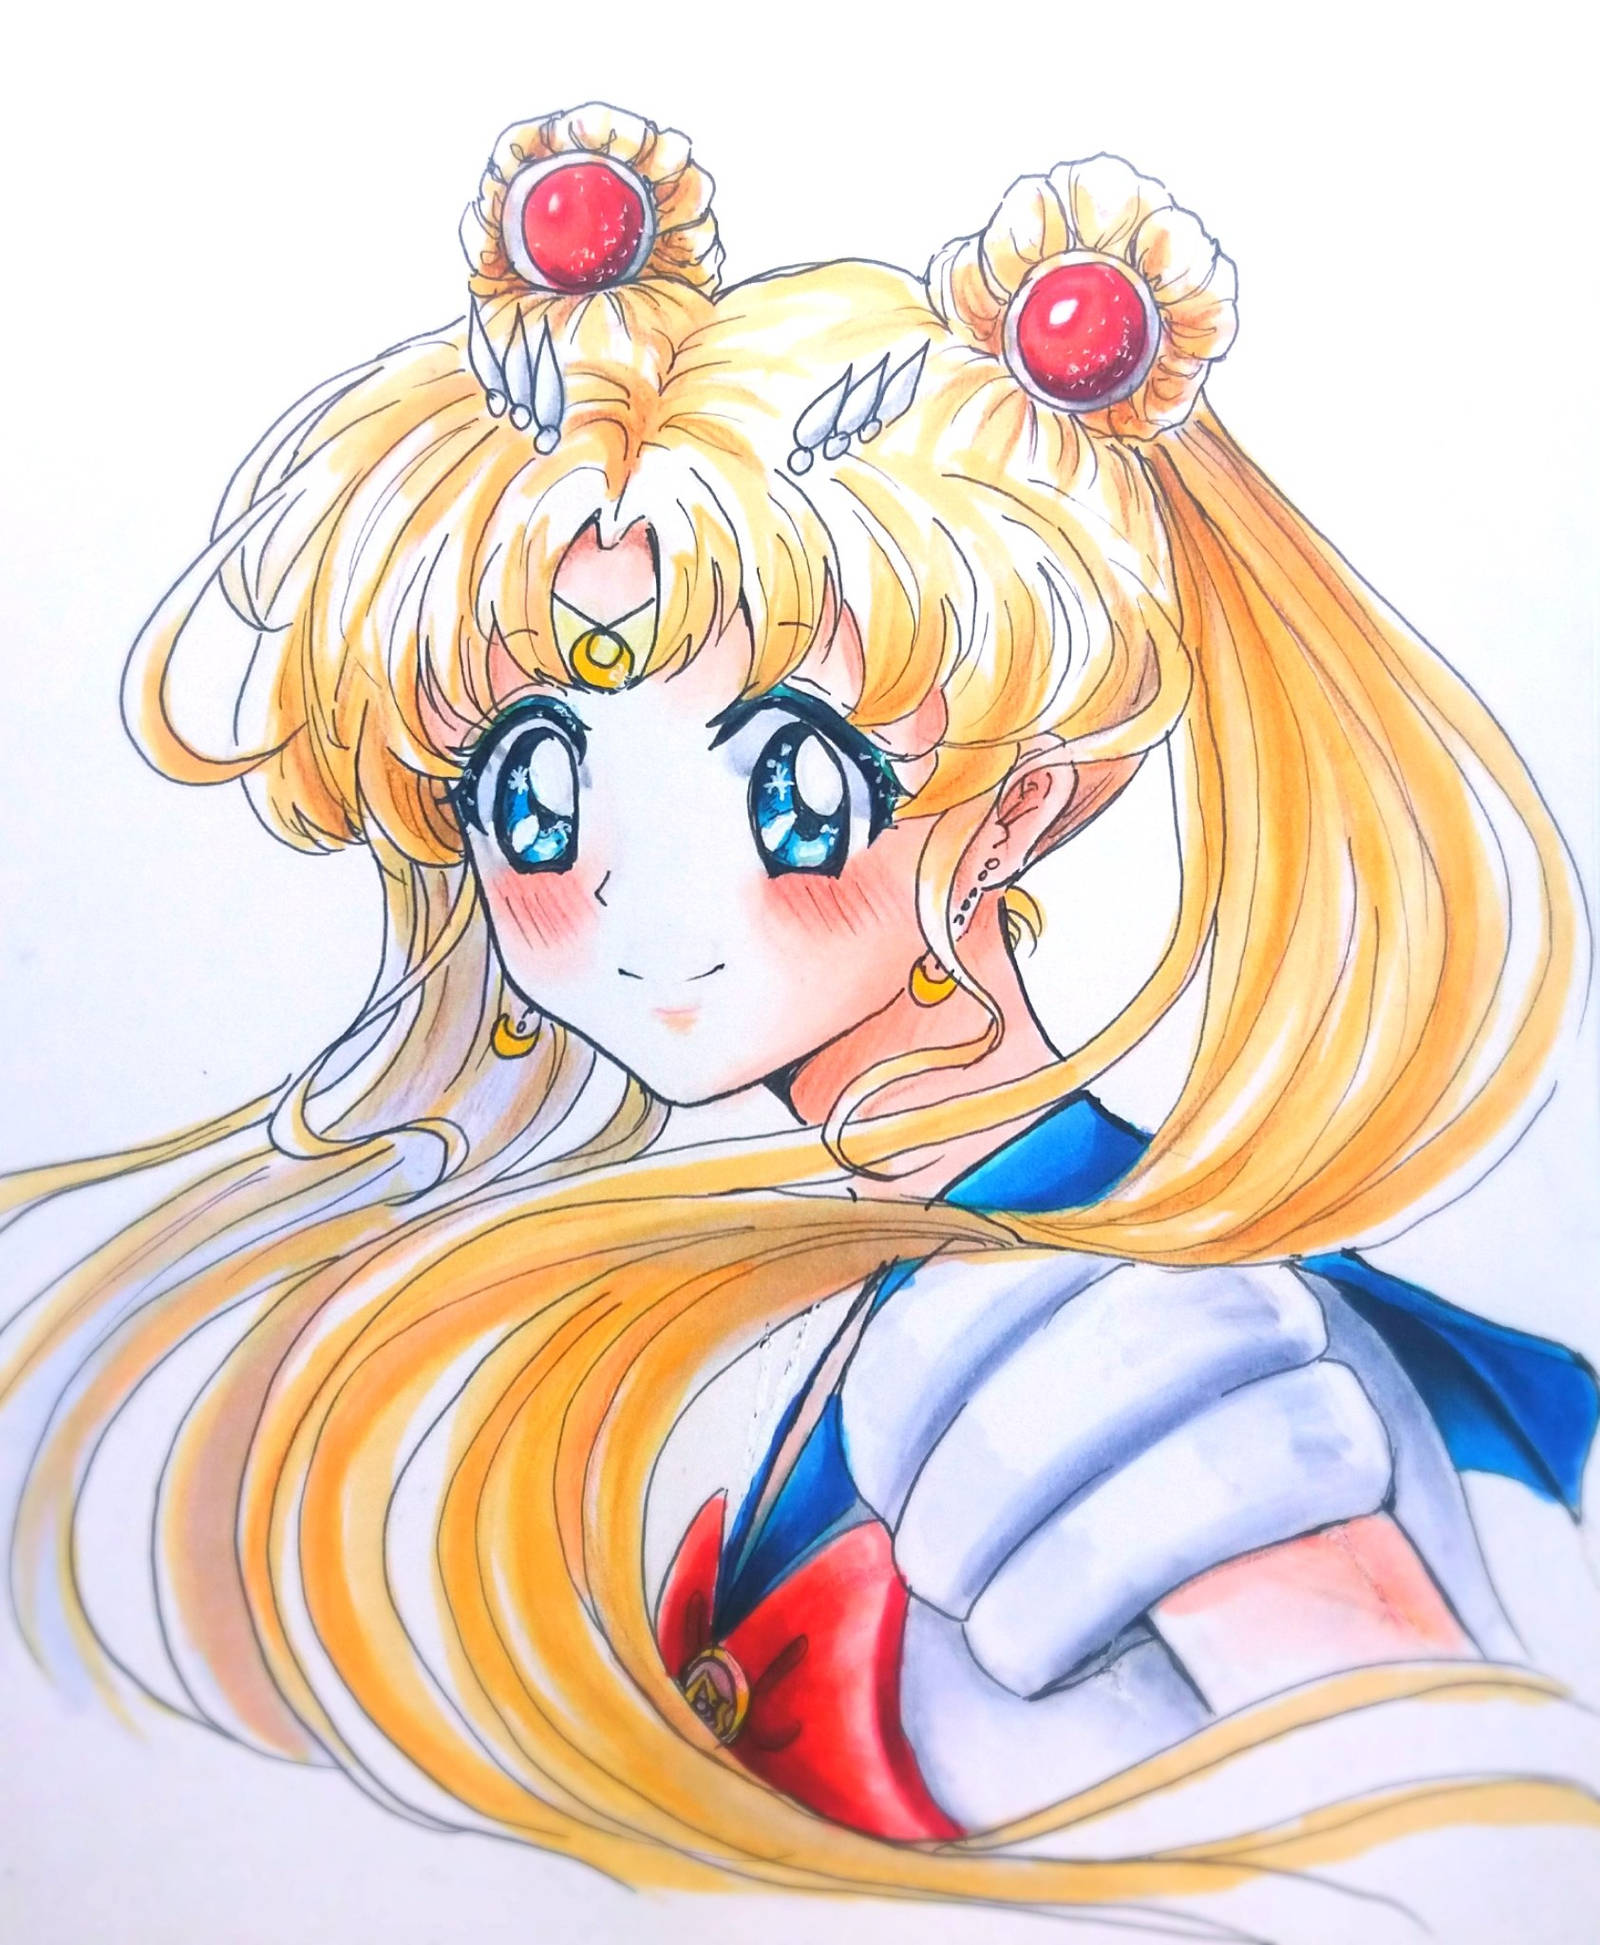 Sailor Moon By Depressivebunny On DeviantArt